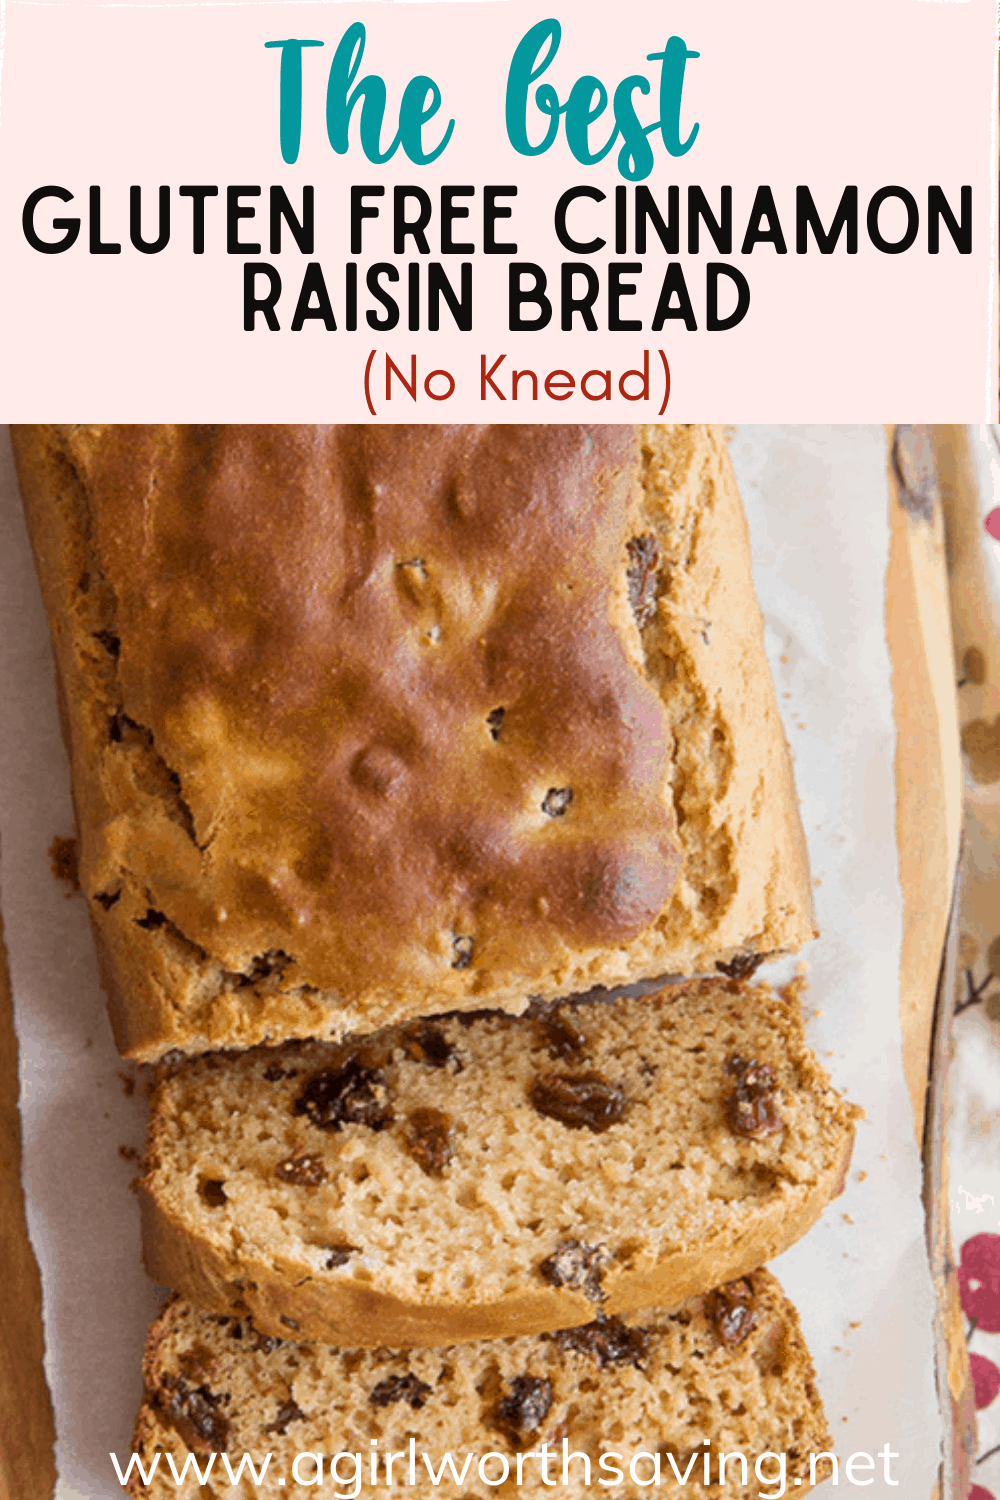 There is just nothing like a slice of this Gluten Free Cinnamon Raisin Bread (No Knead) for breakfast! Top with jam or butter for a special treat.